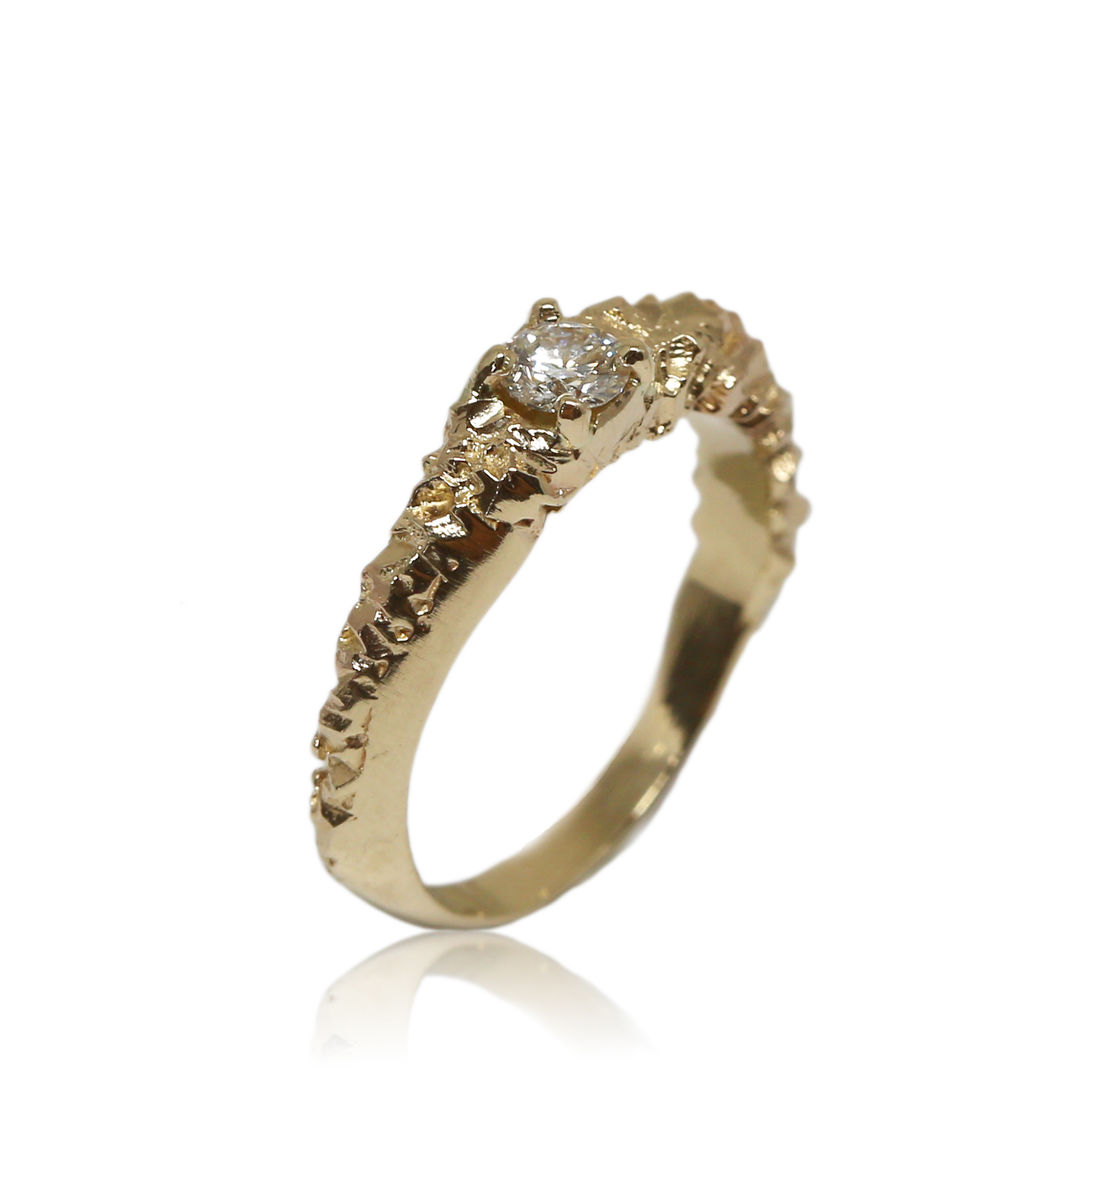 Rocky Ring in 14k yellow gold with 0,25 carat white diamond - product images  of